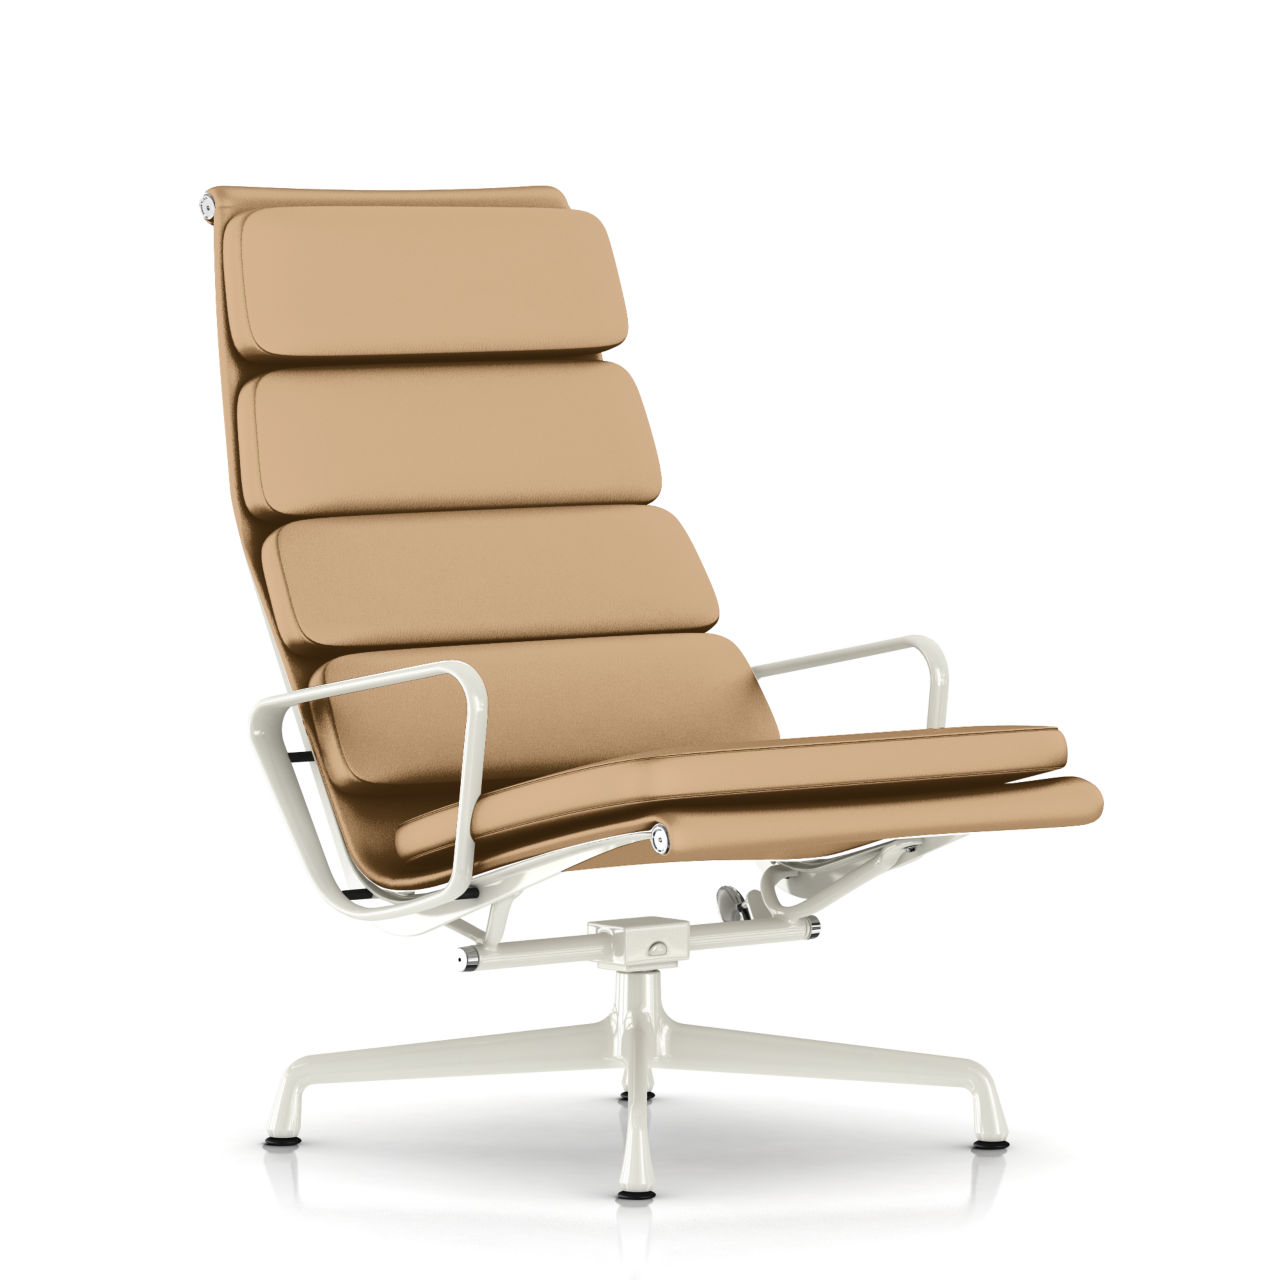 Eames Soft Pad Lounge Chair in Khaki Leather by Herman Miller